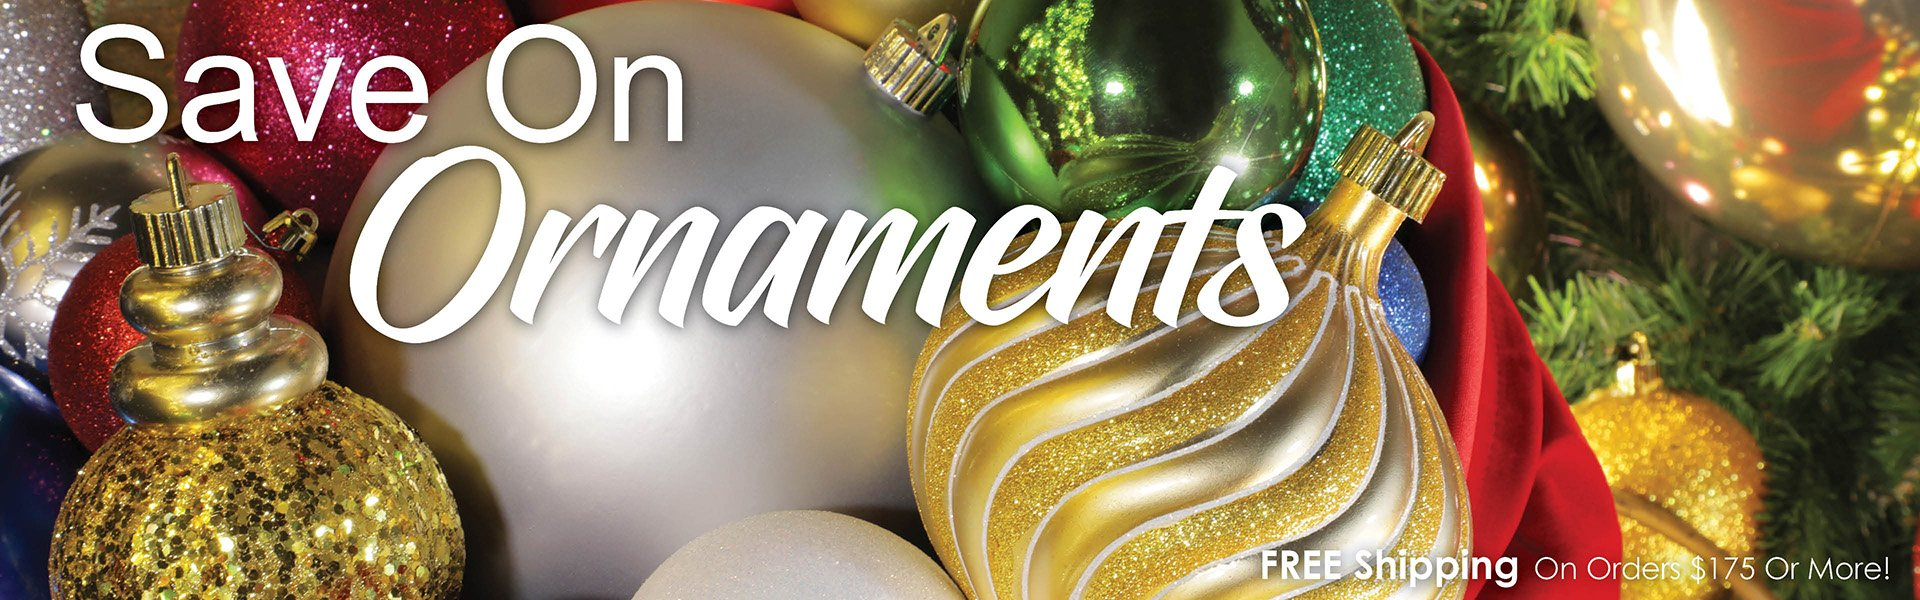 Save on Ornaments